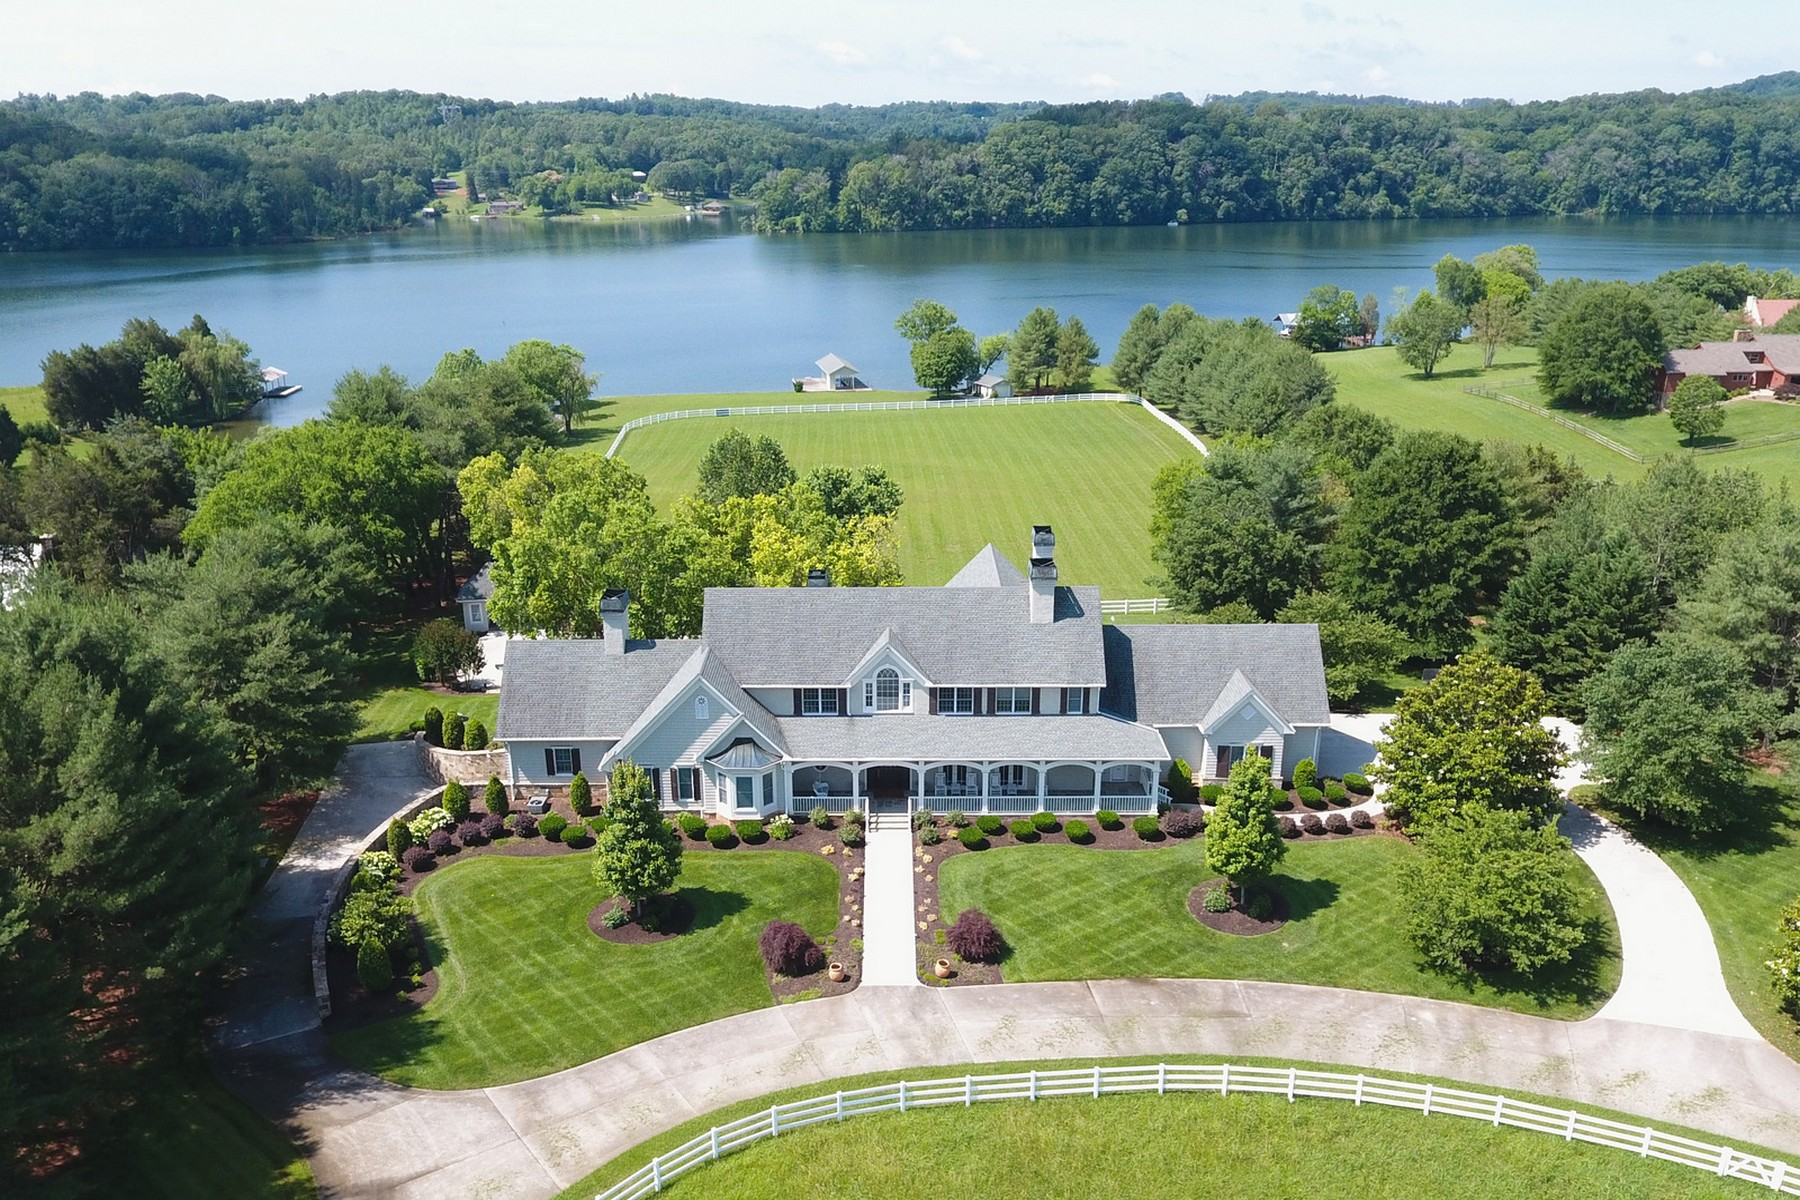 Maison unifamiliale pour l Vente à The Perfect Home For The Affluent Buyer 22000 Beals Chapel Road Lenoir City, Tennessee 37772 États-Unis